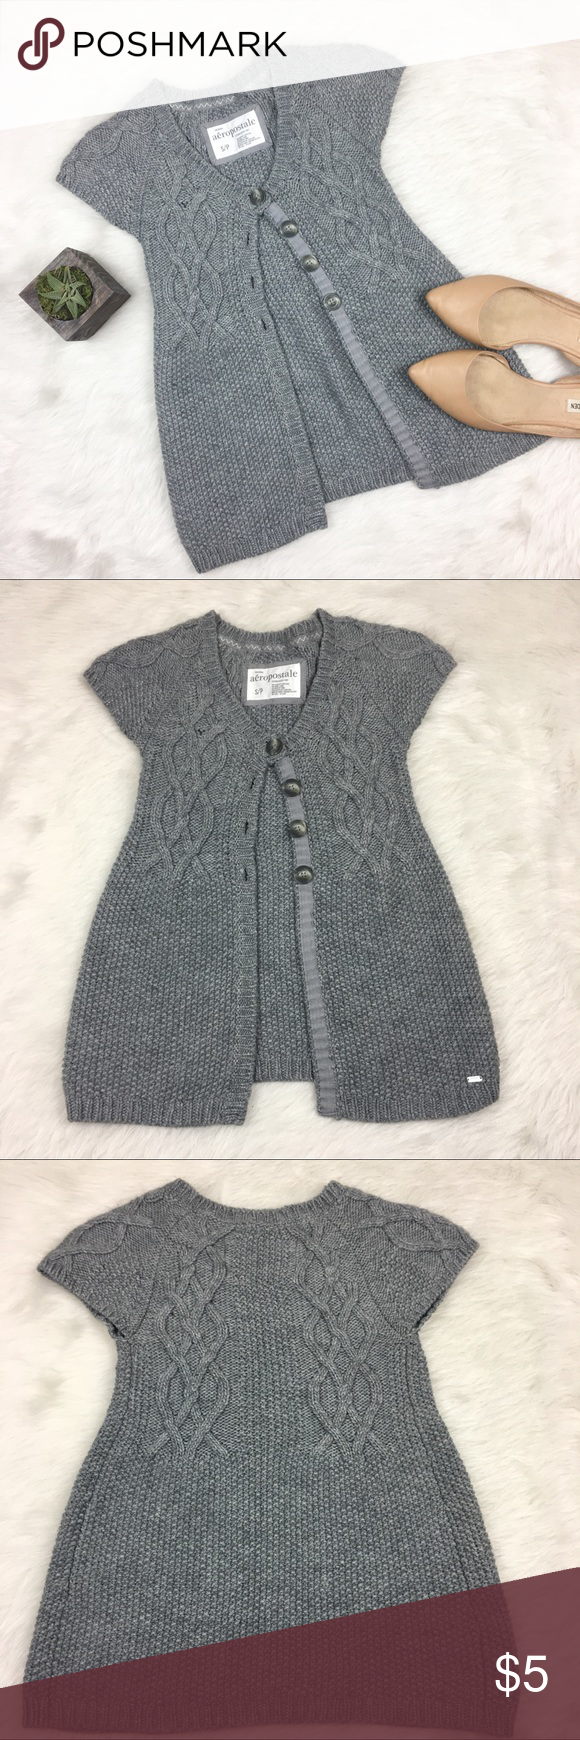 Aeropostale Gray Cap Sleeve Cardigan Aeropostale gray cap sleeve cardigan. Size small. Fits more like an xxs or XS. Approximate measurements are 23' long and 12' bust. GUC with one small place in knots that's pulled apart like a hole. ❌No trades ❌ Modeling ❌No PayPal or off Posh transactions ❤️ I 💕Bundles ❤️Reasonable Offers PLEASE ❤️ Aeropostale Sweaters Cardigans